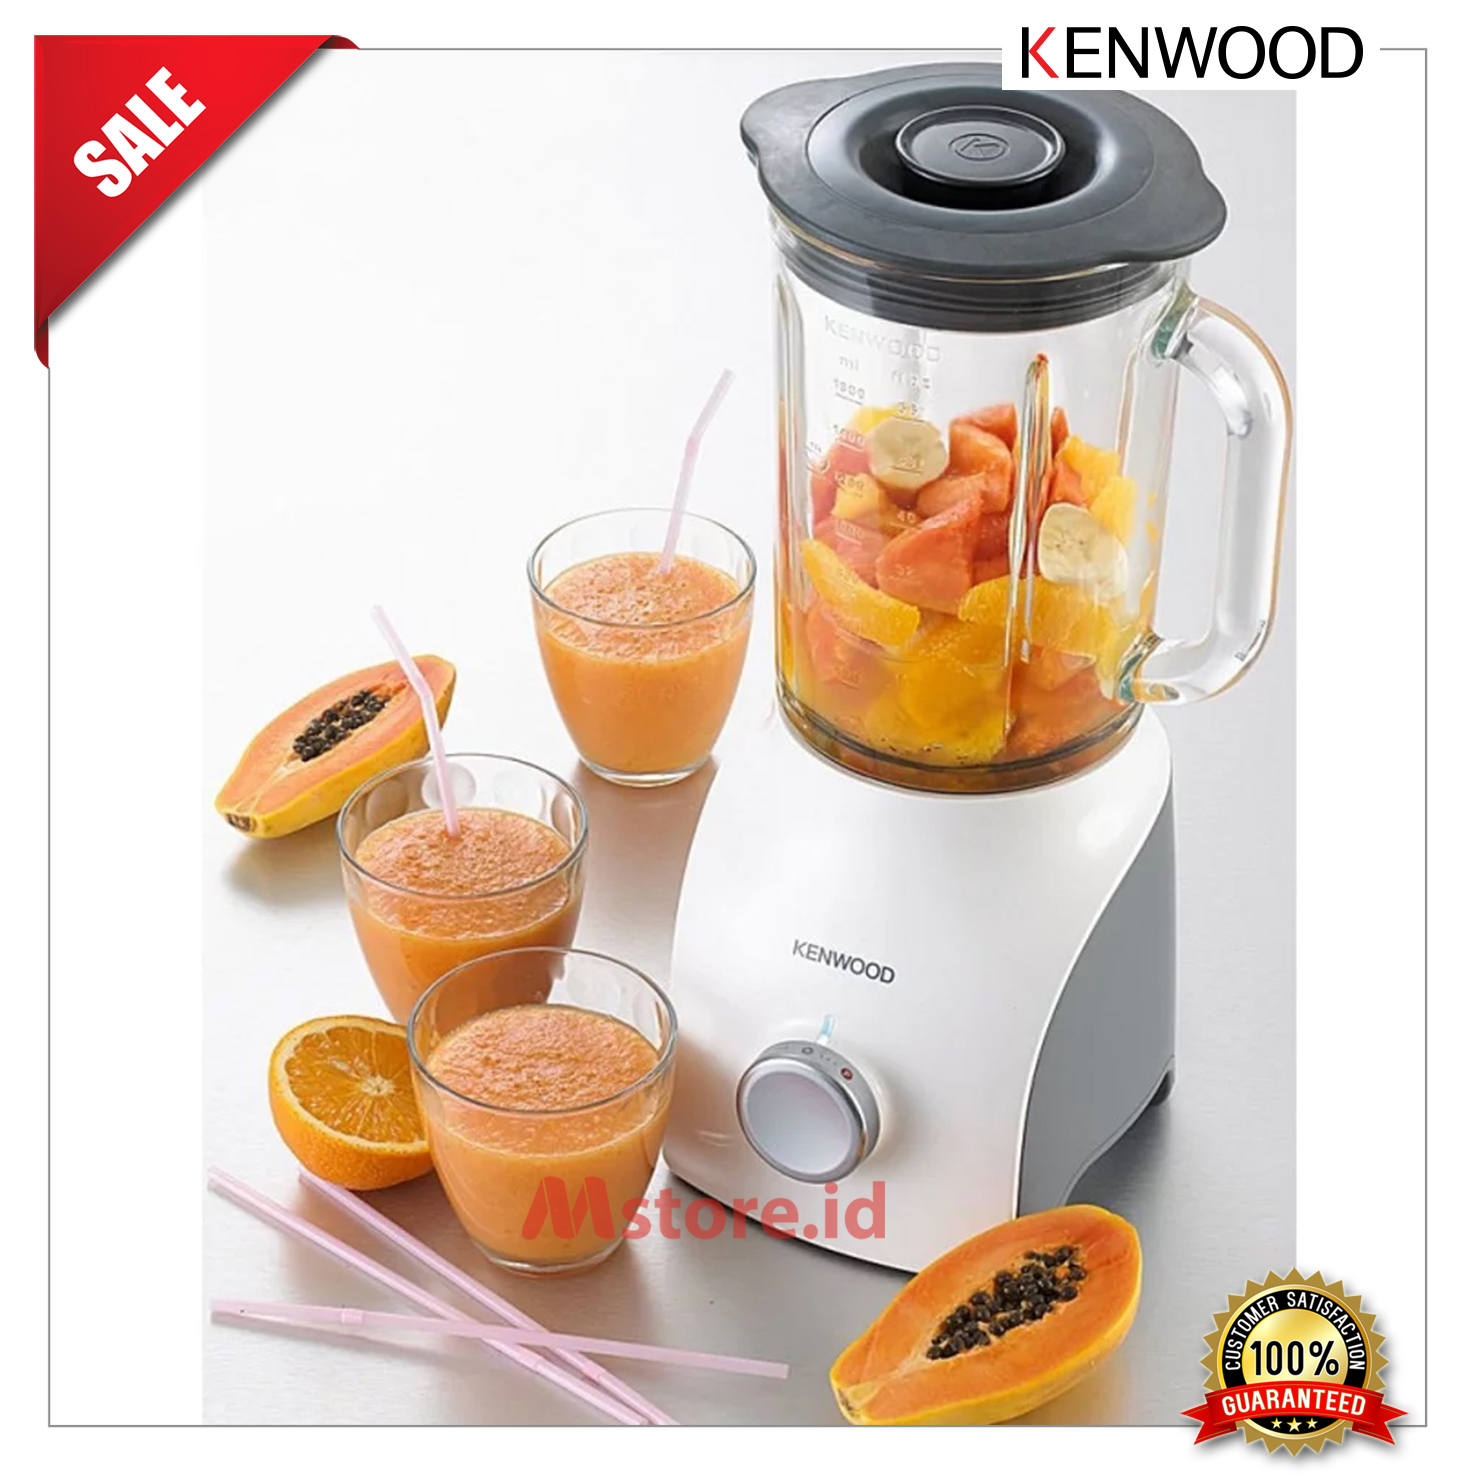 PRODUCT PROFILE 3 – KENWOOD BLP 600